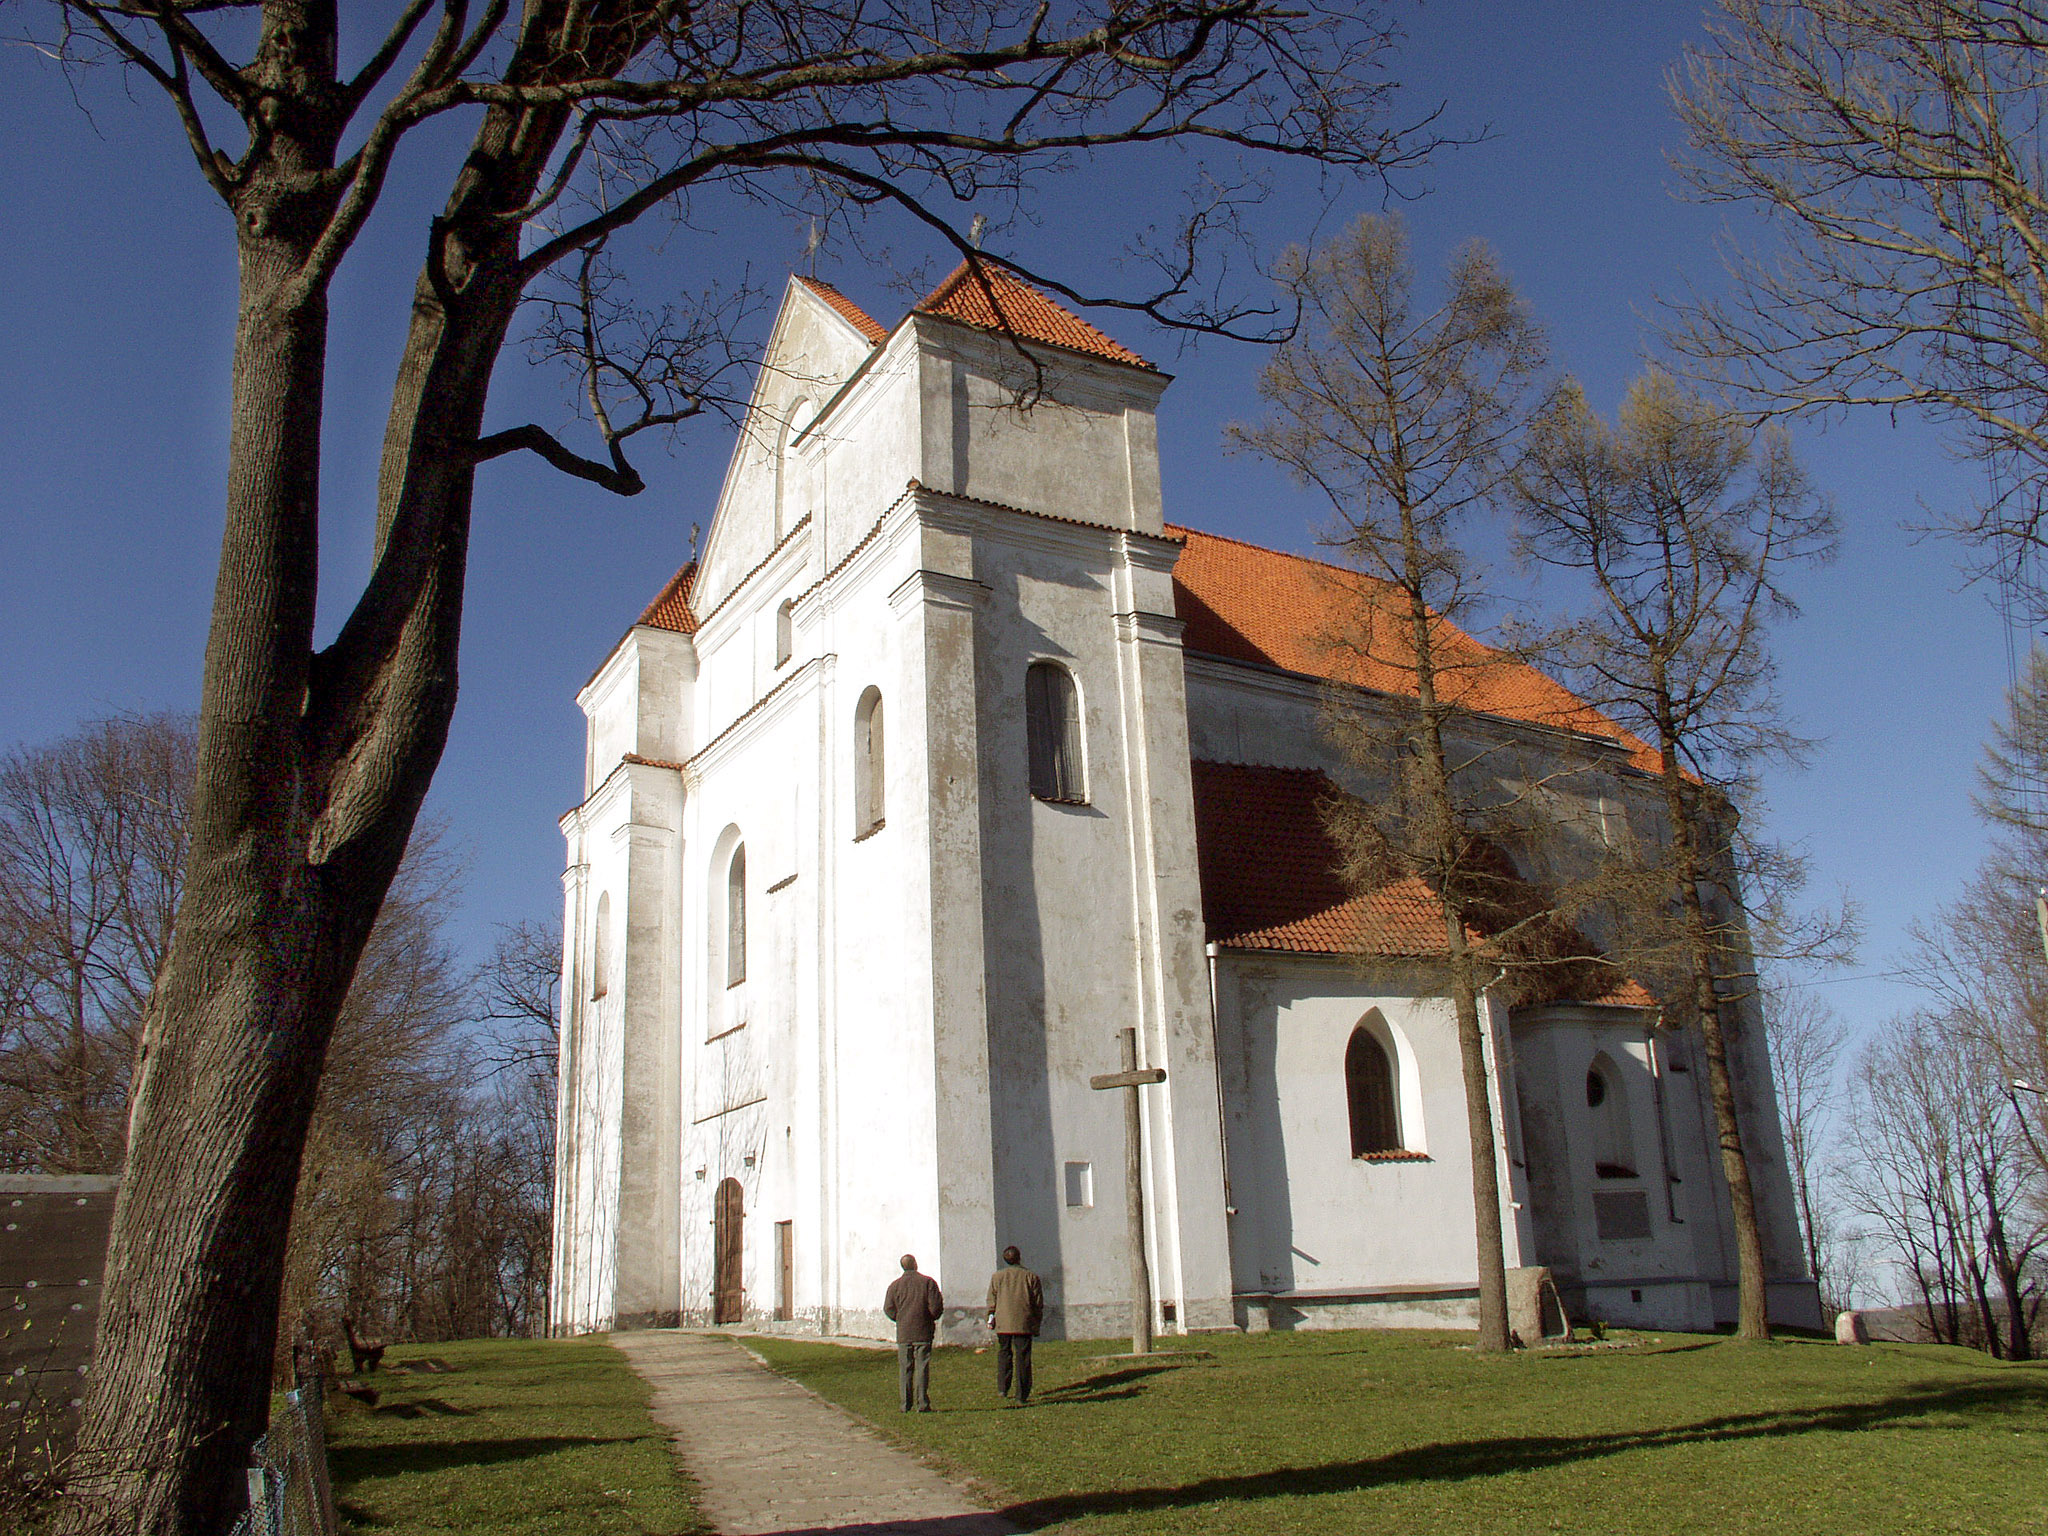 Catholic church in Novogrudok - architectural monument XV-XVIII centuries, BelTA